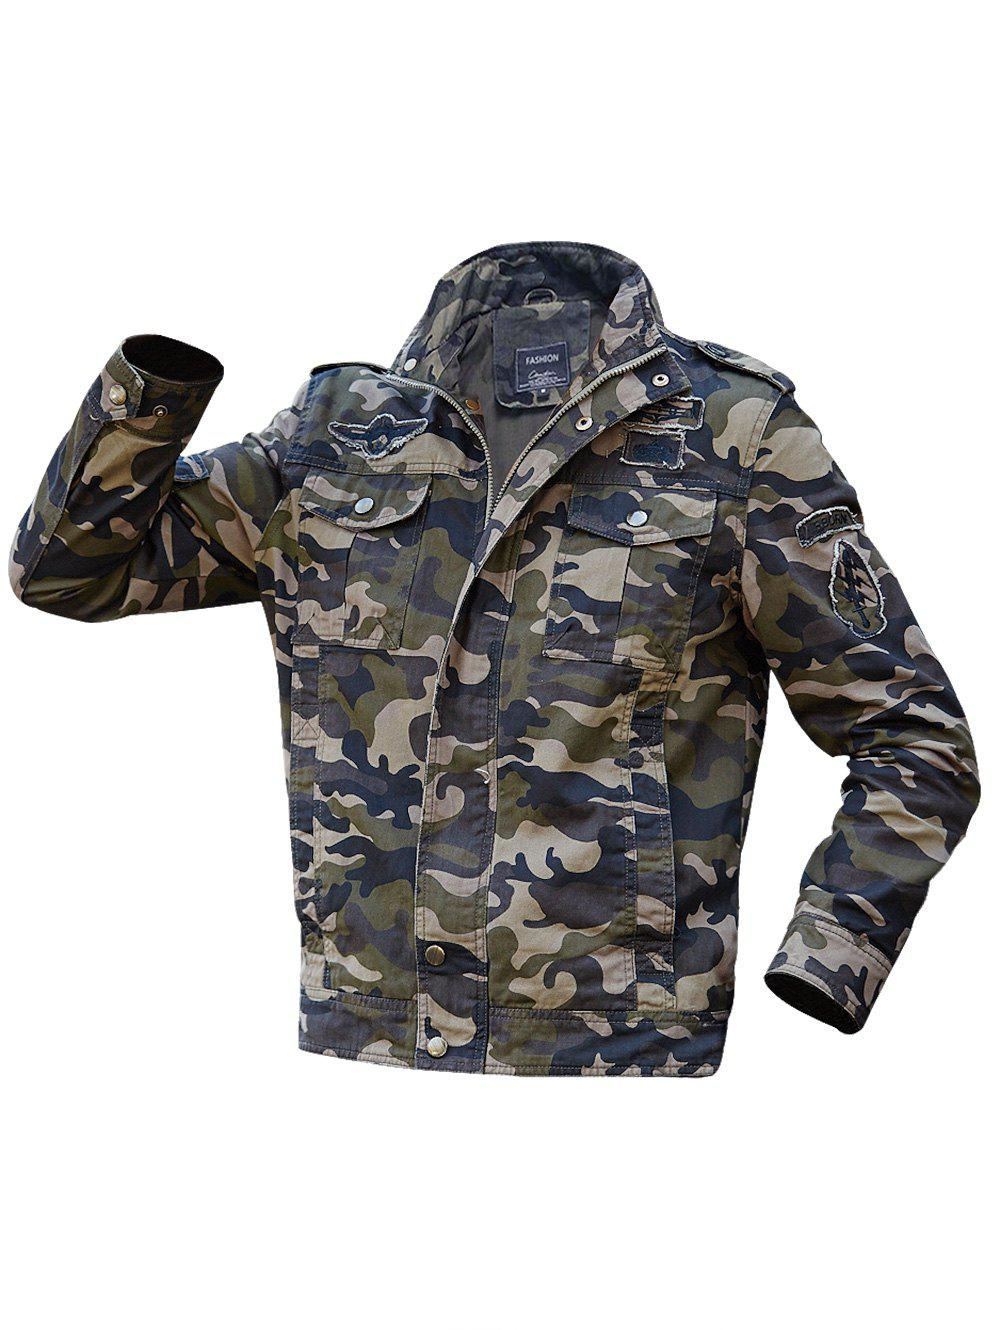 Cheap Appliques Camouflage Printed Jacket